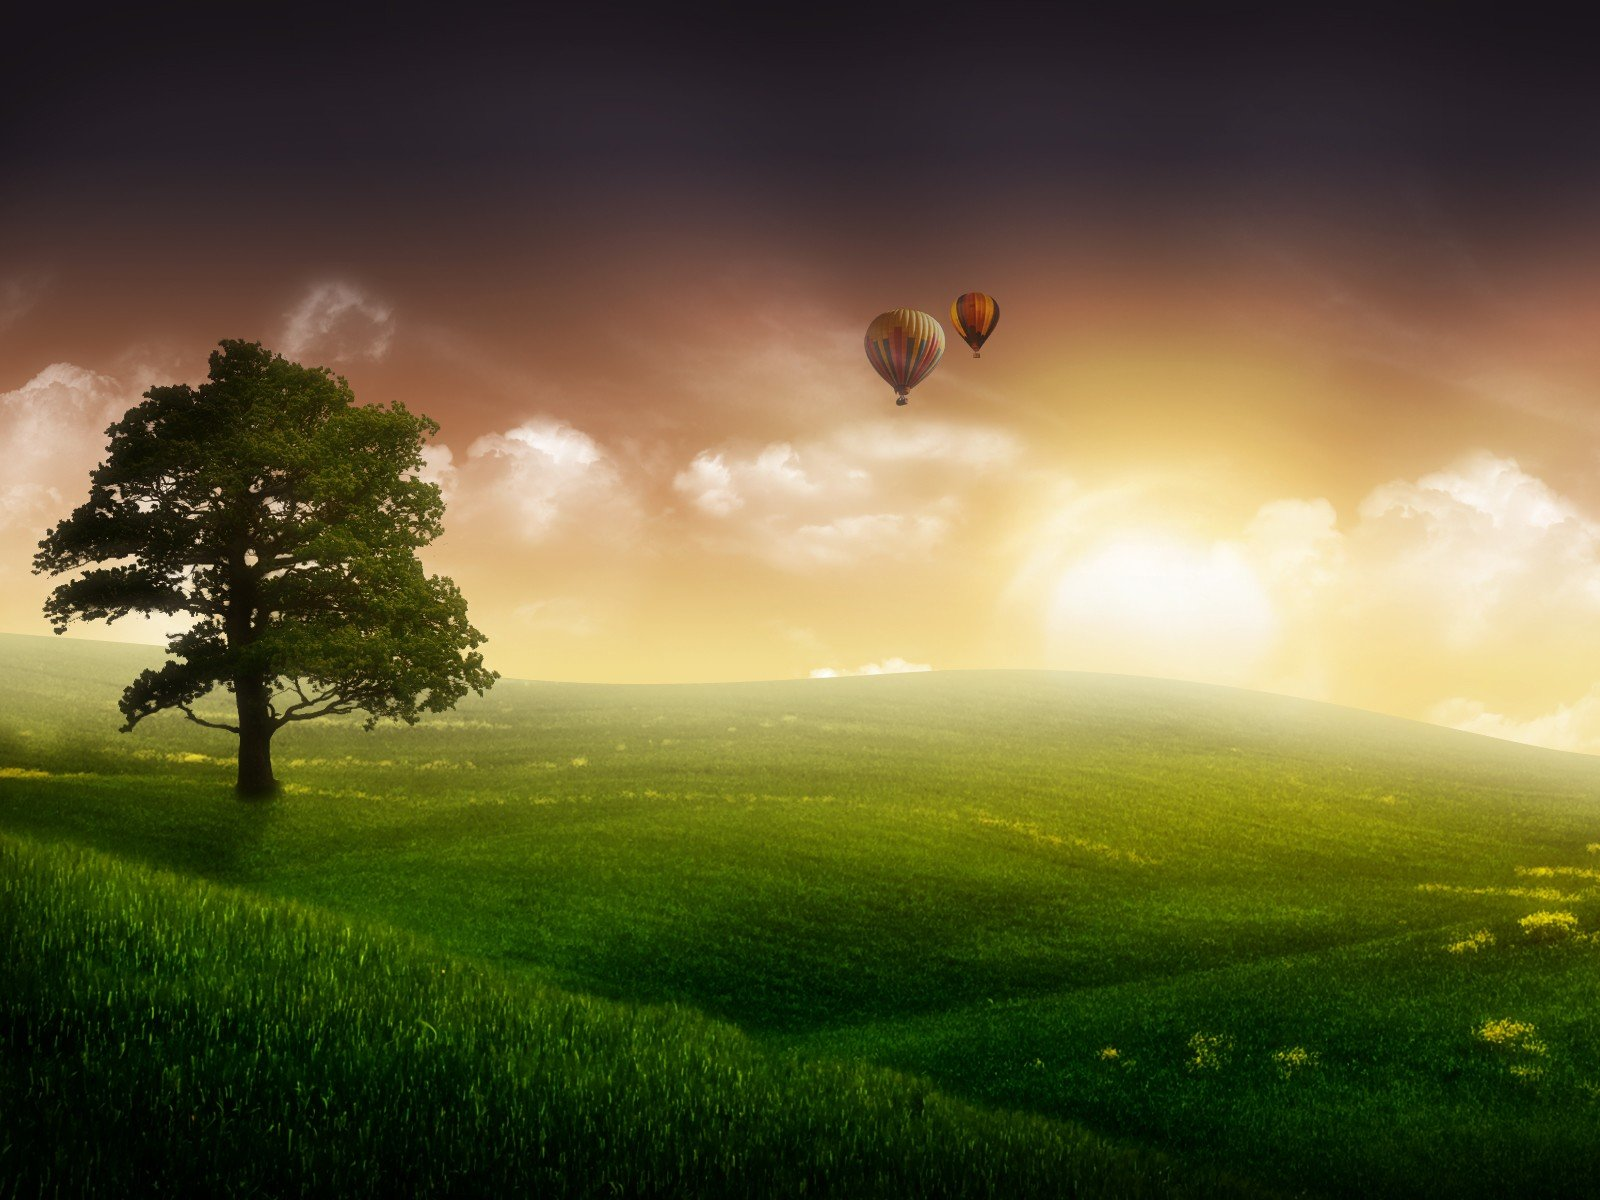 balloons-and-a-tree-wallpapers_11827_1600x1200.jpg